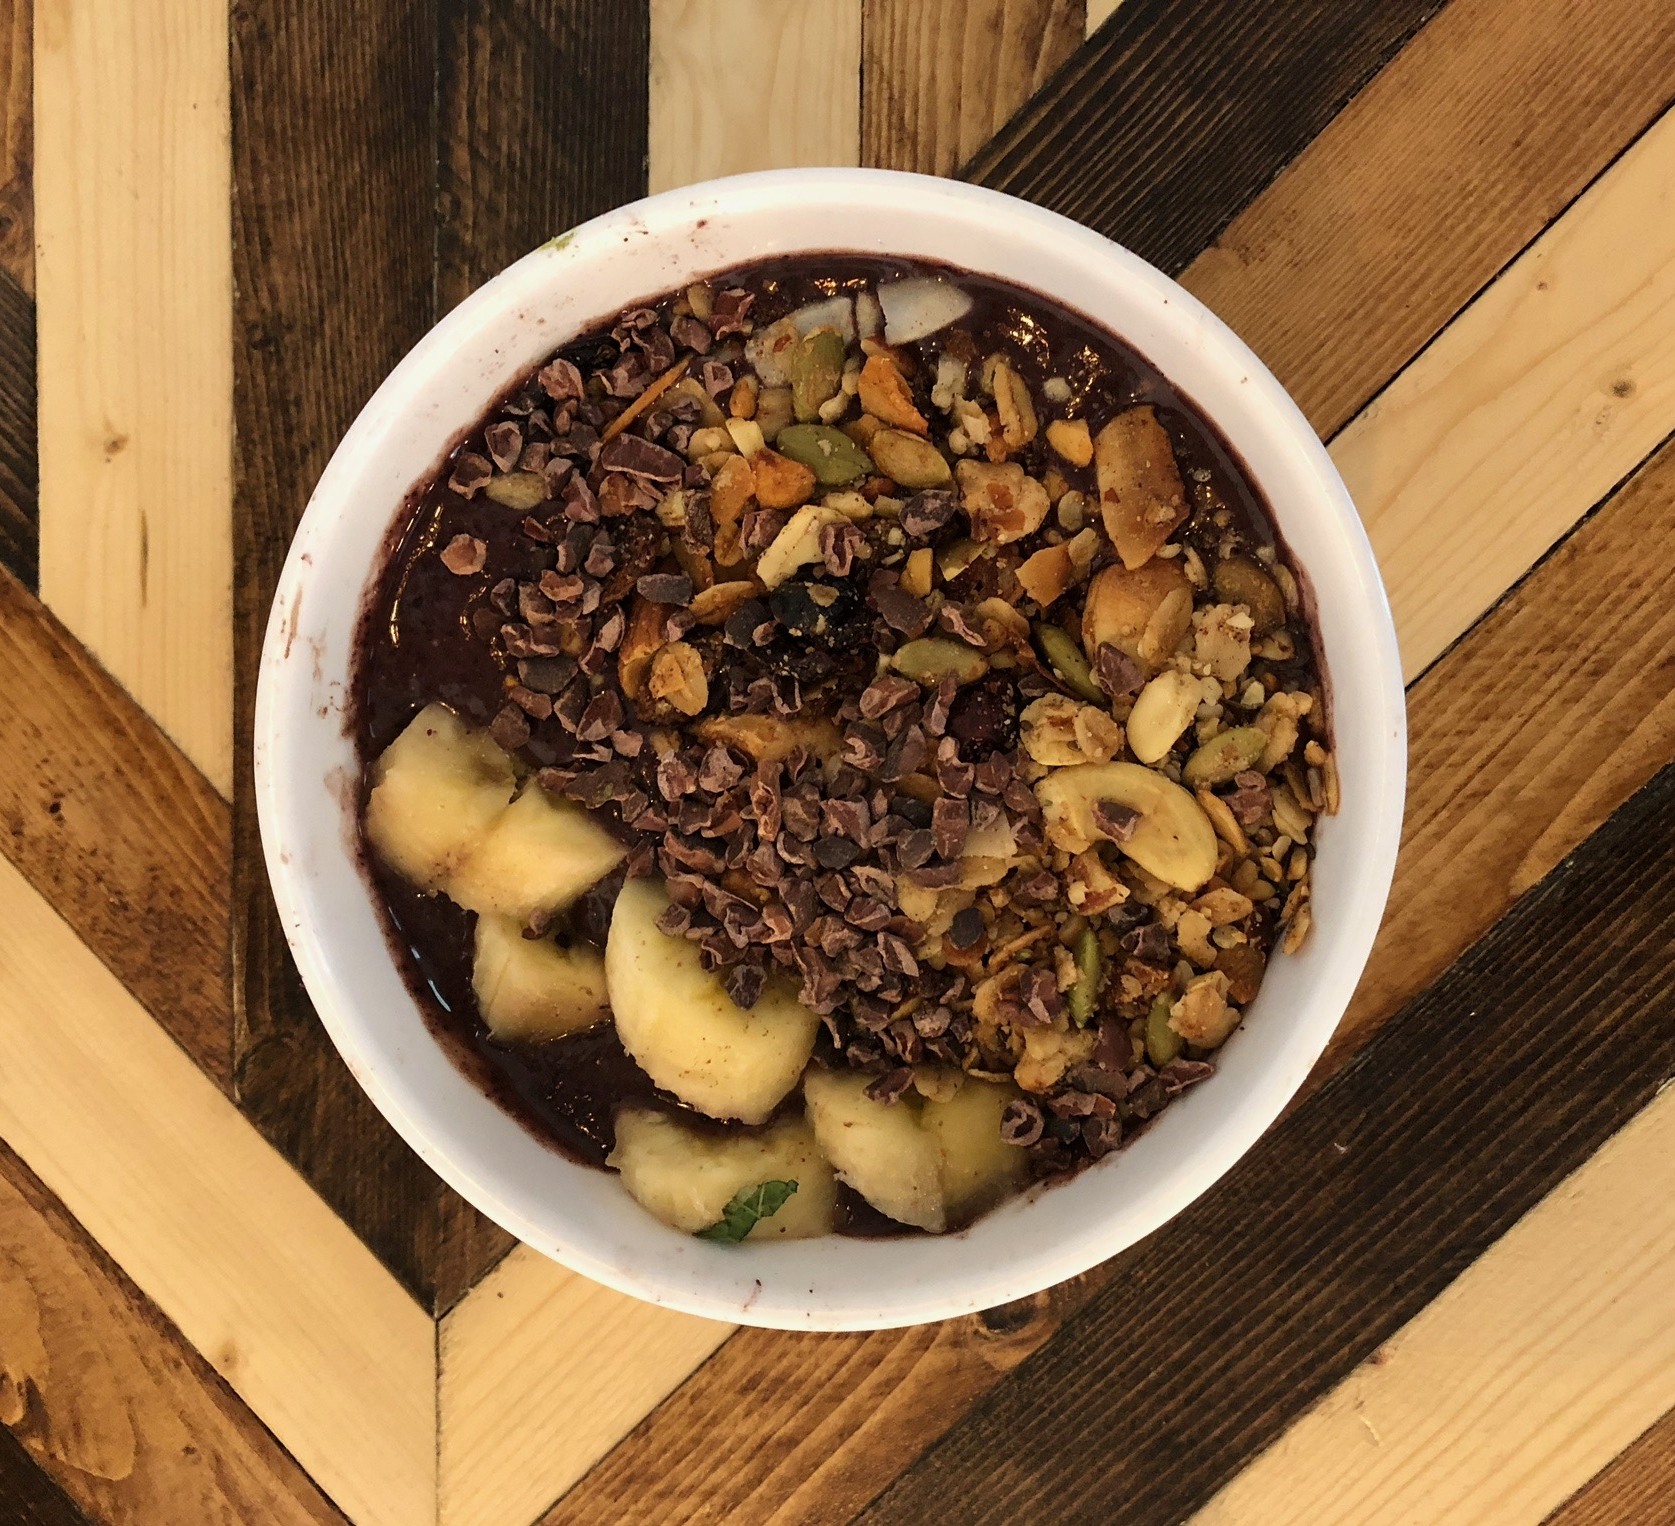 nutty nib smoothie bowl - banana +blueberry +almond butter +cacao +acai +agave / topped with banana +granola &coconut flakes